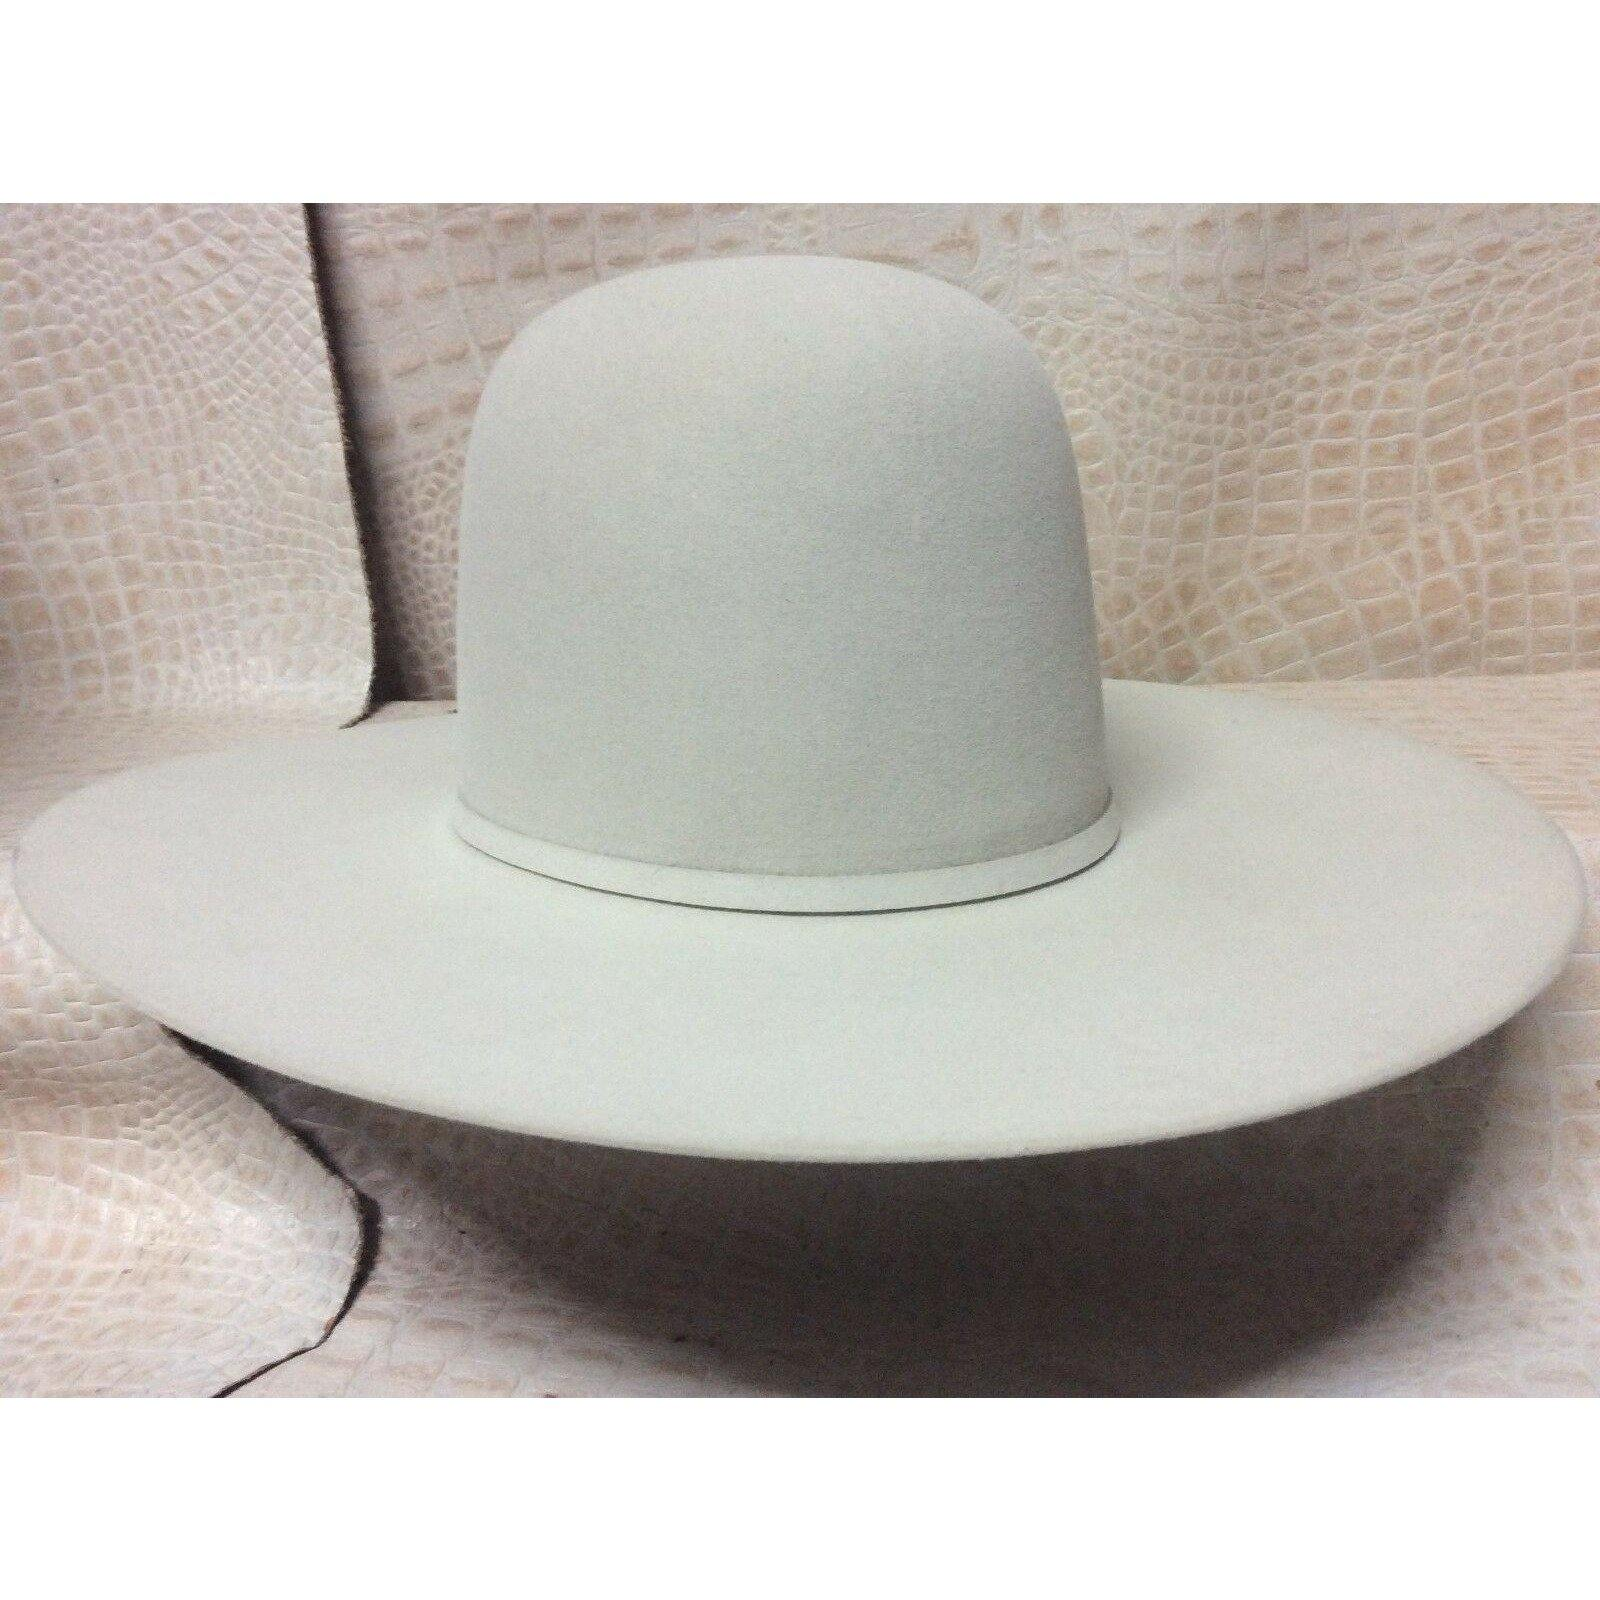 New Resistol 6X Midnight Silver Belly Beaver Fur Felt Open Crown Cowboy Hat Western Rodeo - CWesternwear